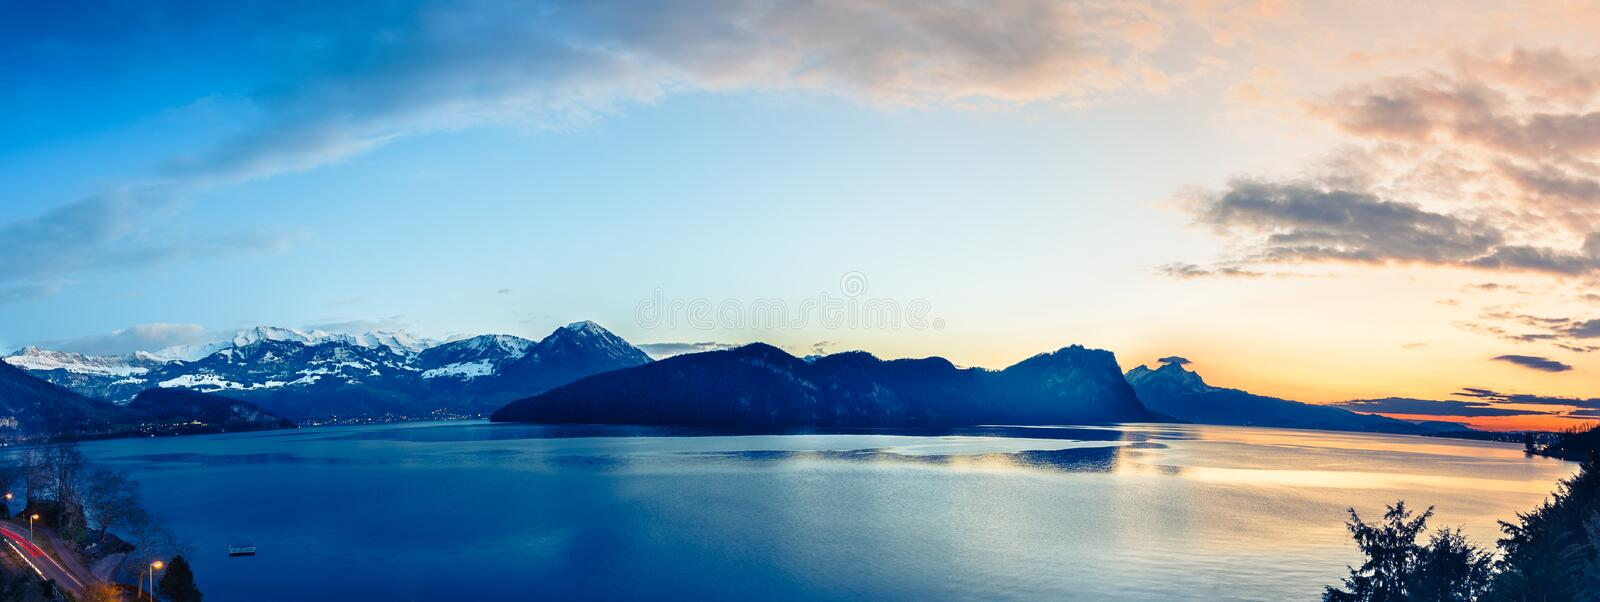 Gorgeous night panorama bright colors. Lake Lucerne. Evening panorama in black and white. Lake Lucerne in Switzerland. Alps Mountains, Mount Pilatus, Burgenstock stock image